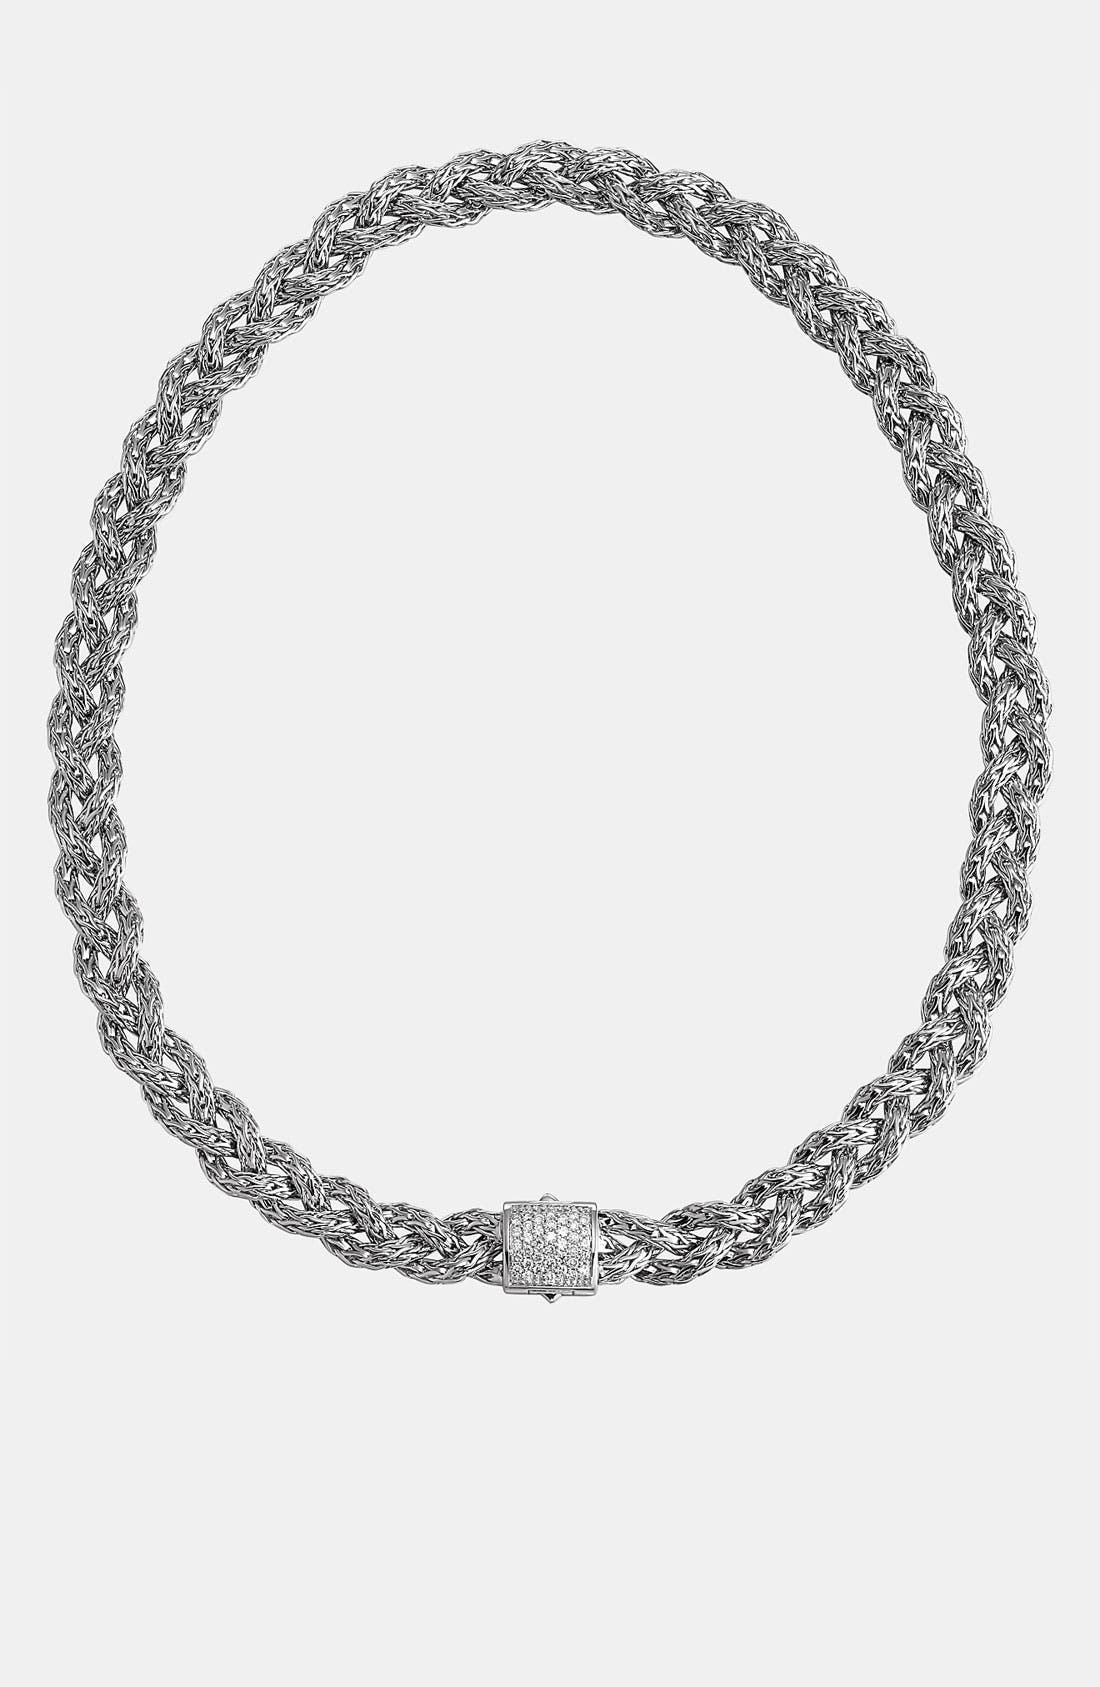 Alternate Image 1 Selected - John Hardy 'Classic Chain' Small Diamond Pavé Braided Chain Necklace